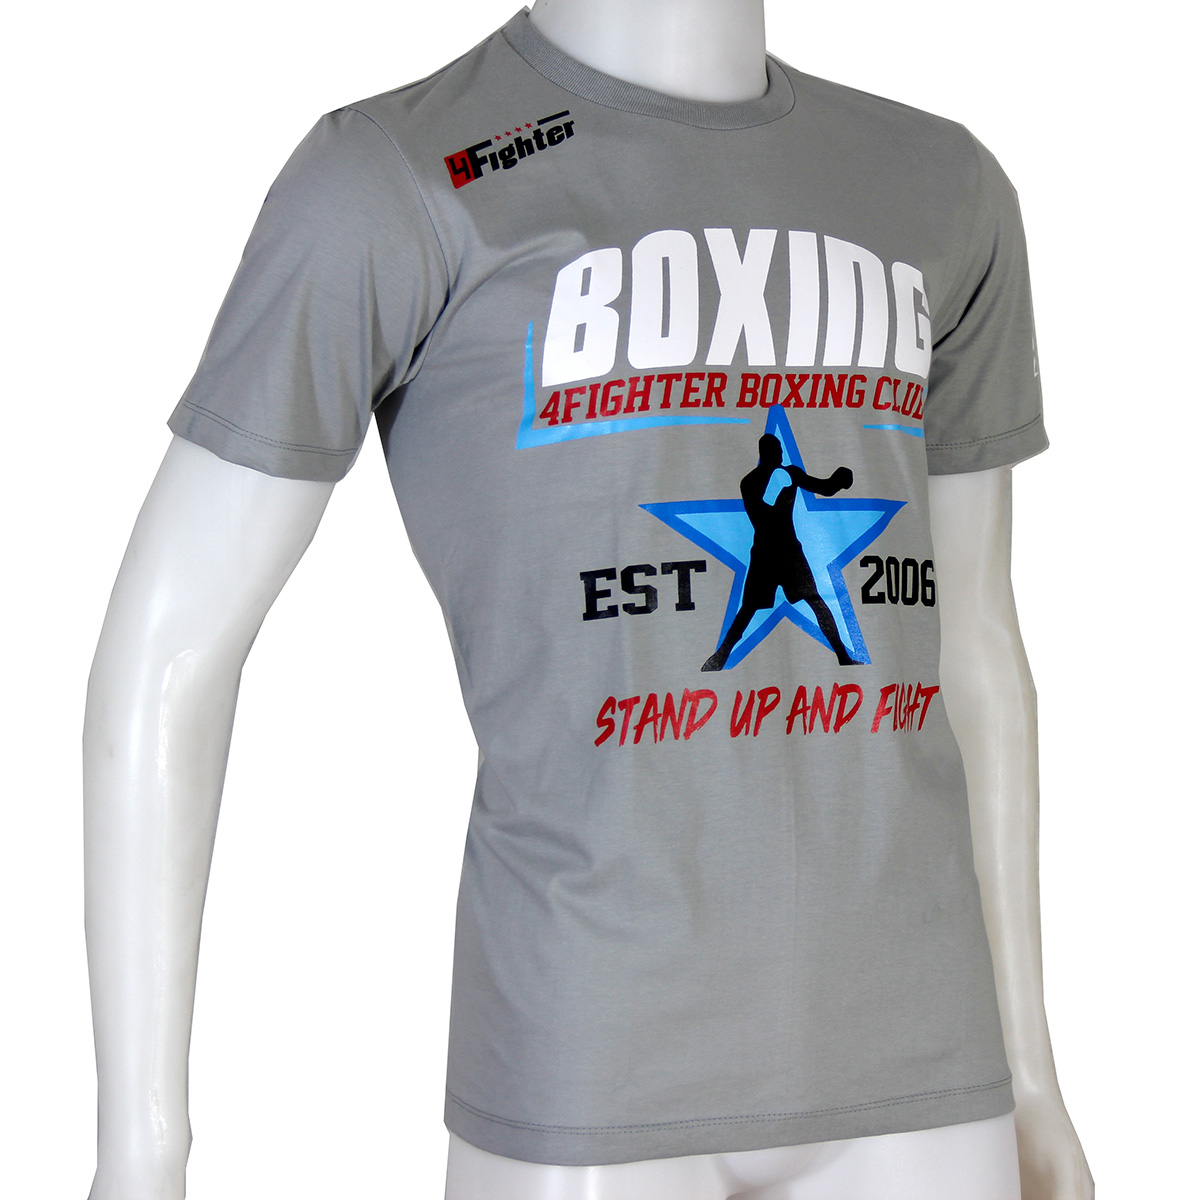 4Fighter Boxing T-Shirt Stand up and Fight in grau rot blau weissem BOXING Druck